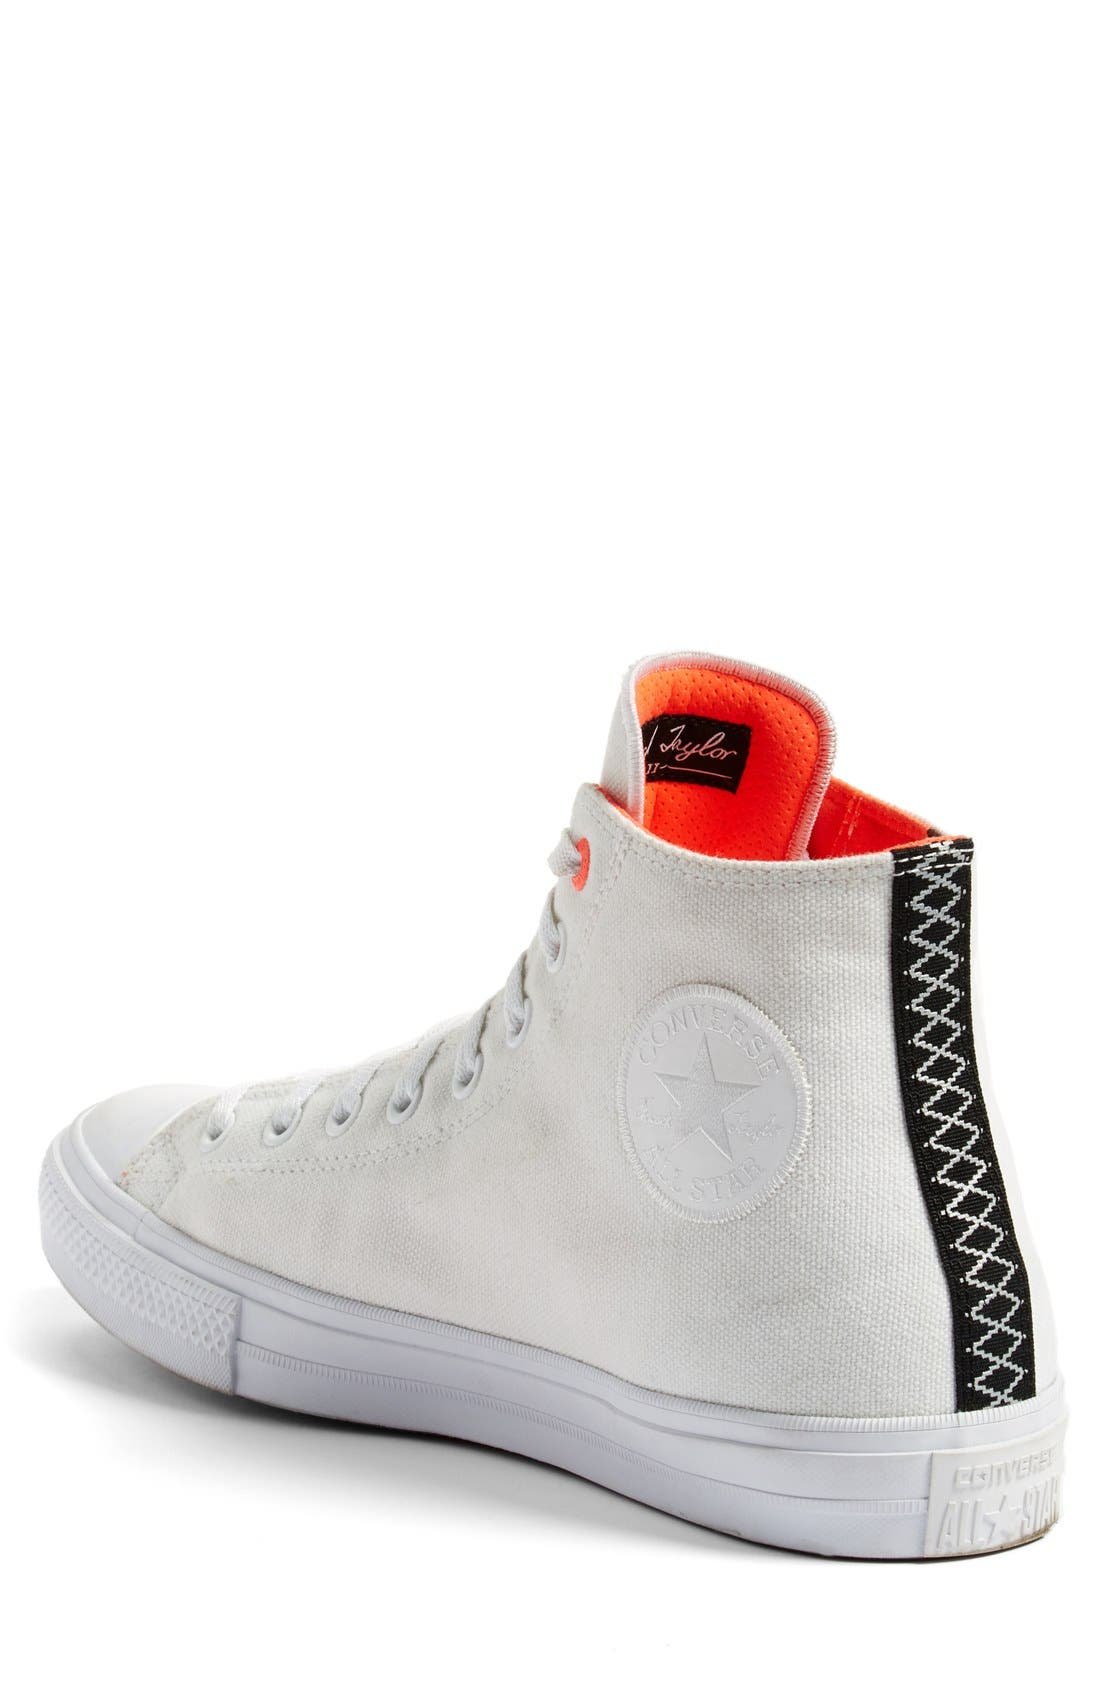 Chuck Taylor<sup>®</sup> All Star<sup>®</sup> II 'Shield' Water Repellent High Top Sneaker,                             Alternate thumbnail 3, color,                             102